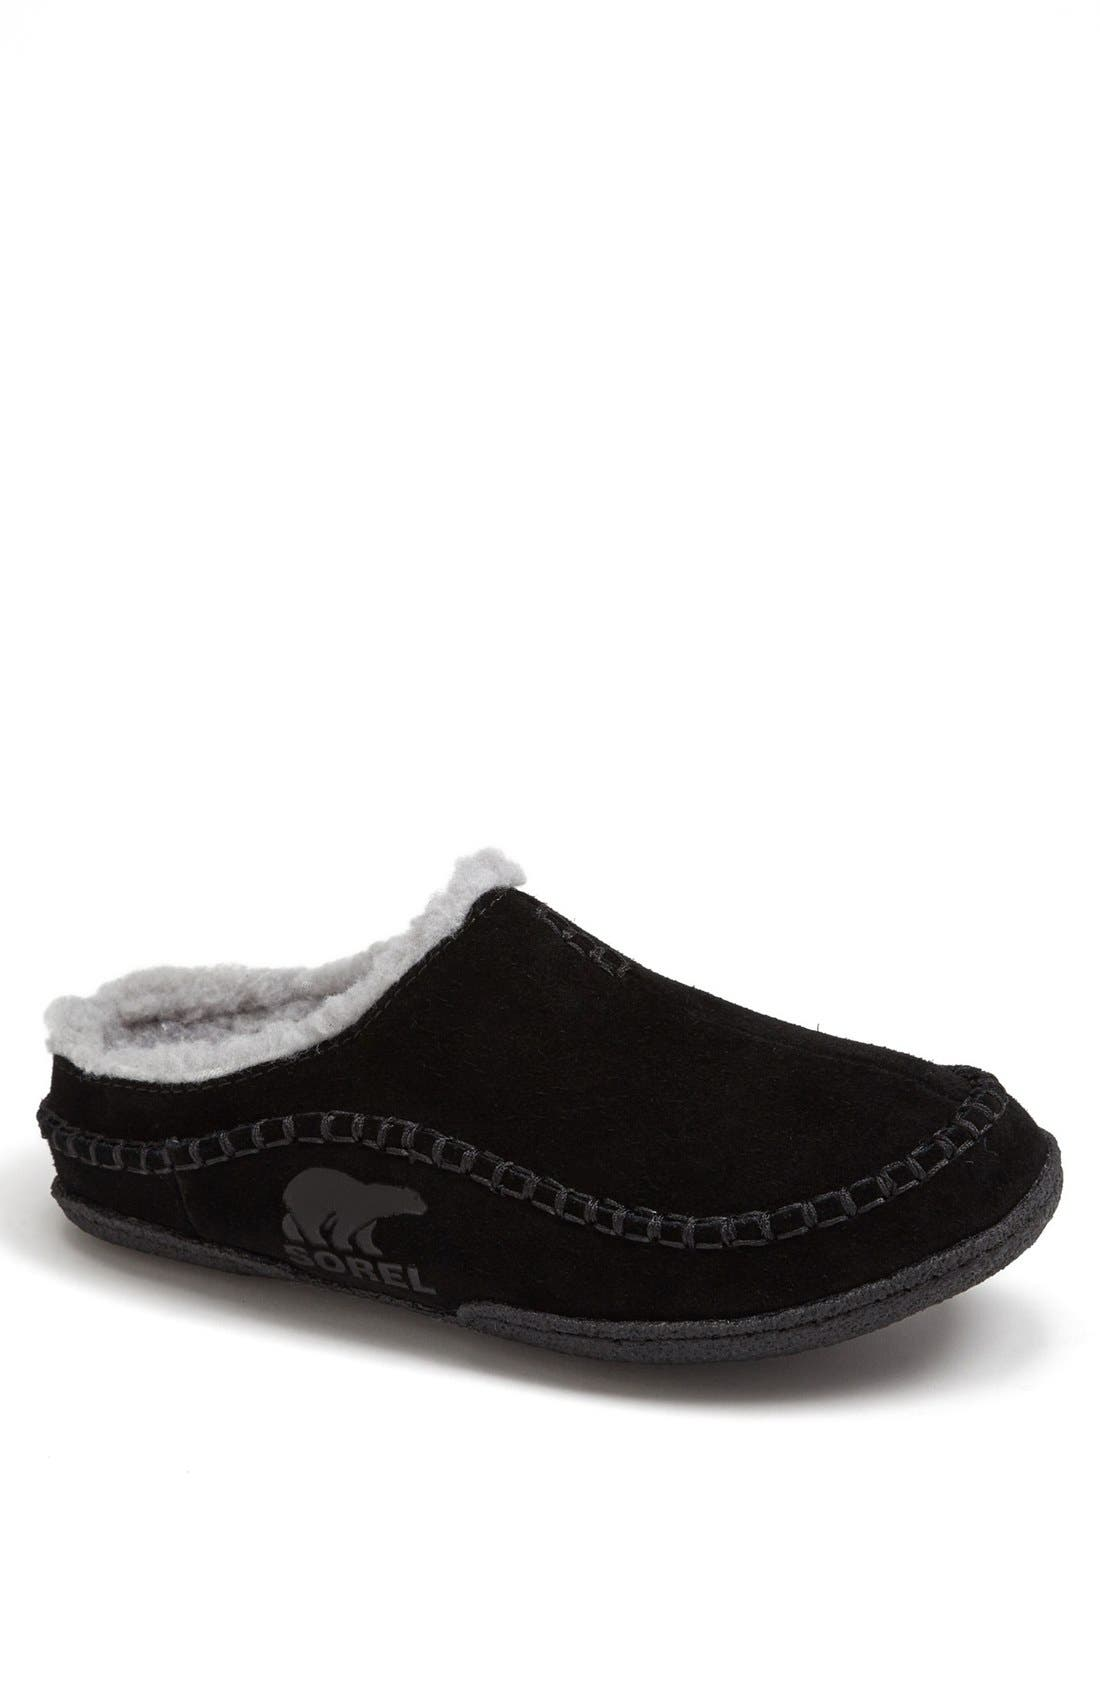 'Falcon Ridge' Slipper,                             Main thumbnail 1, color,                             010